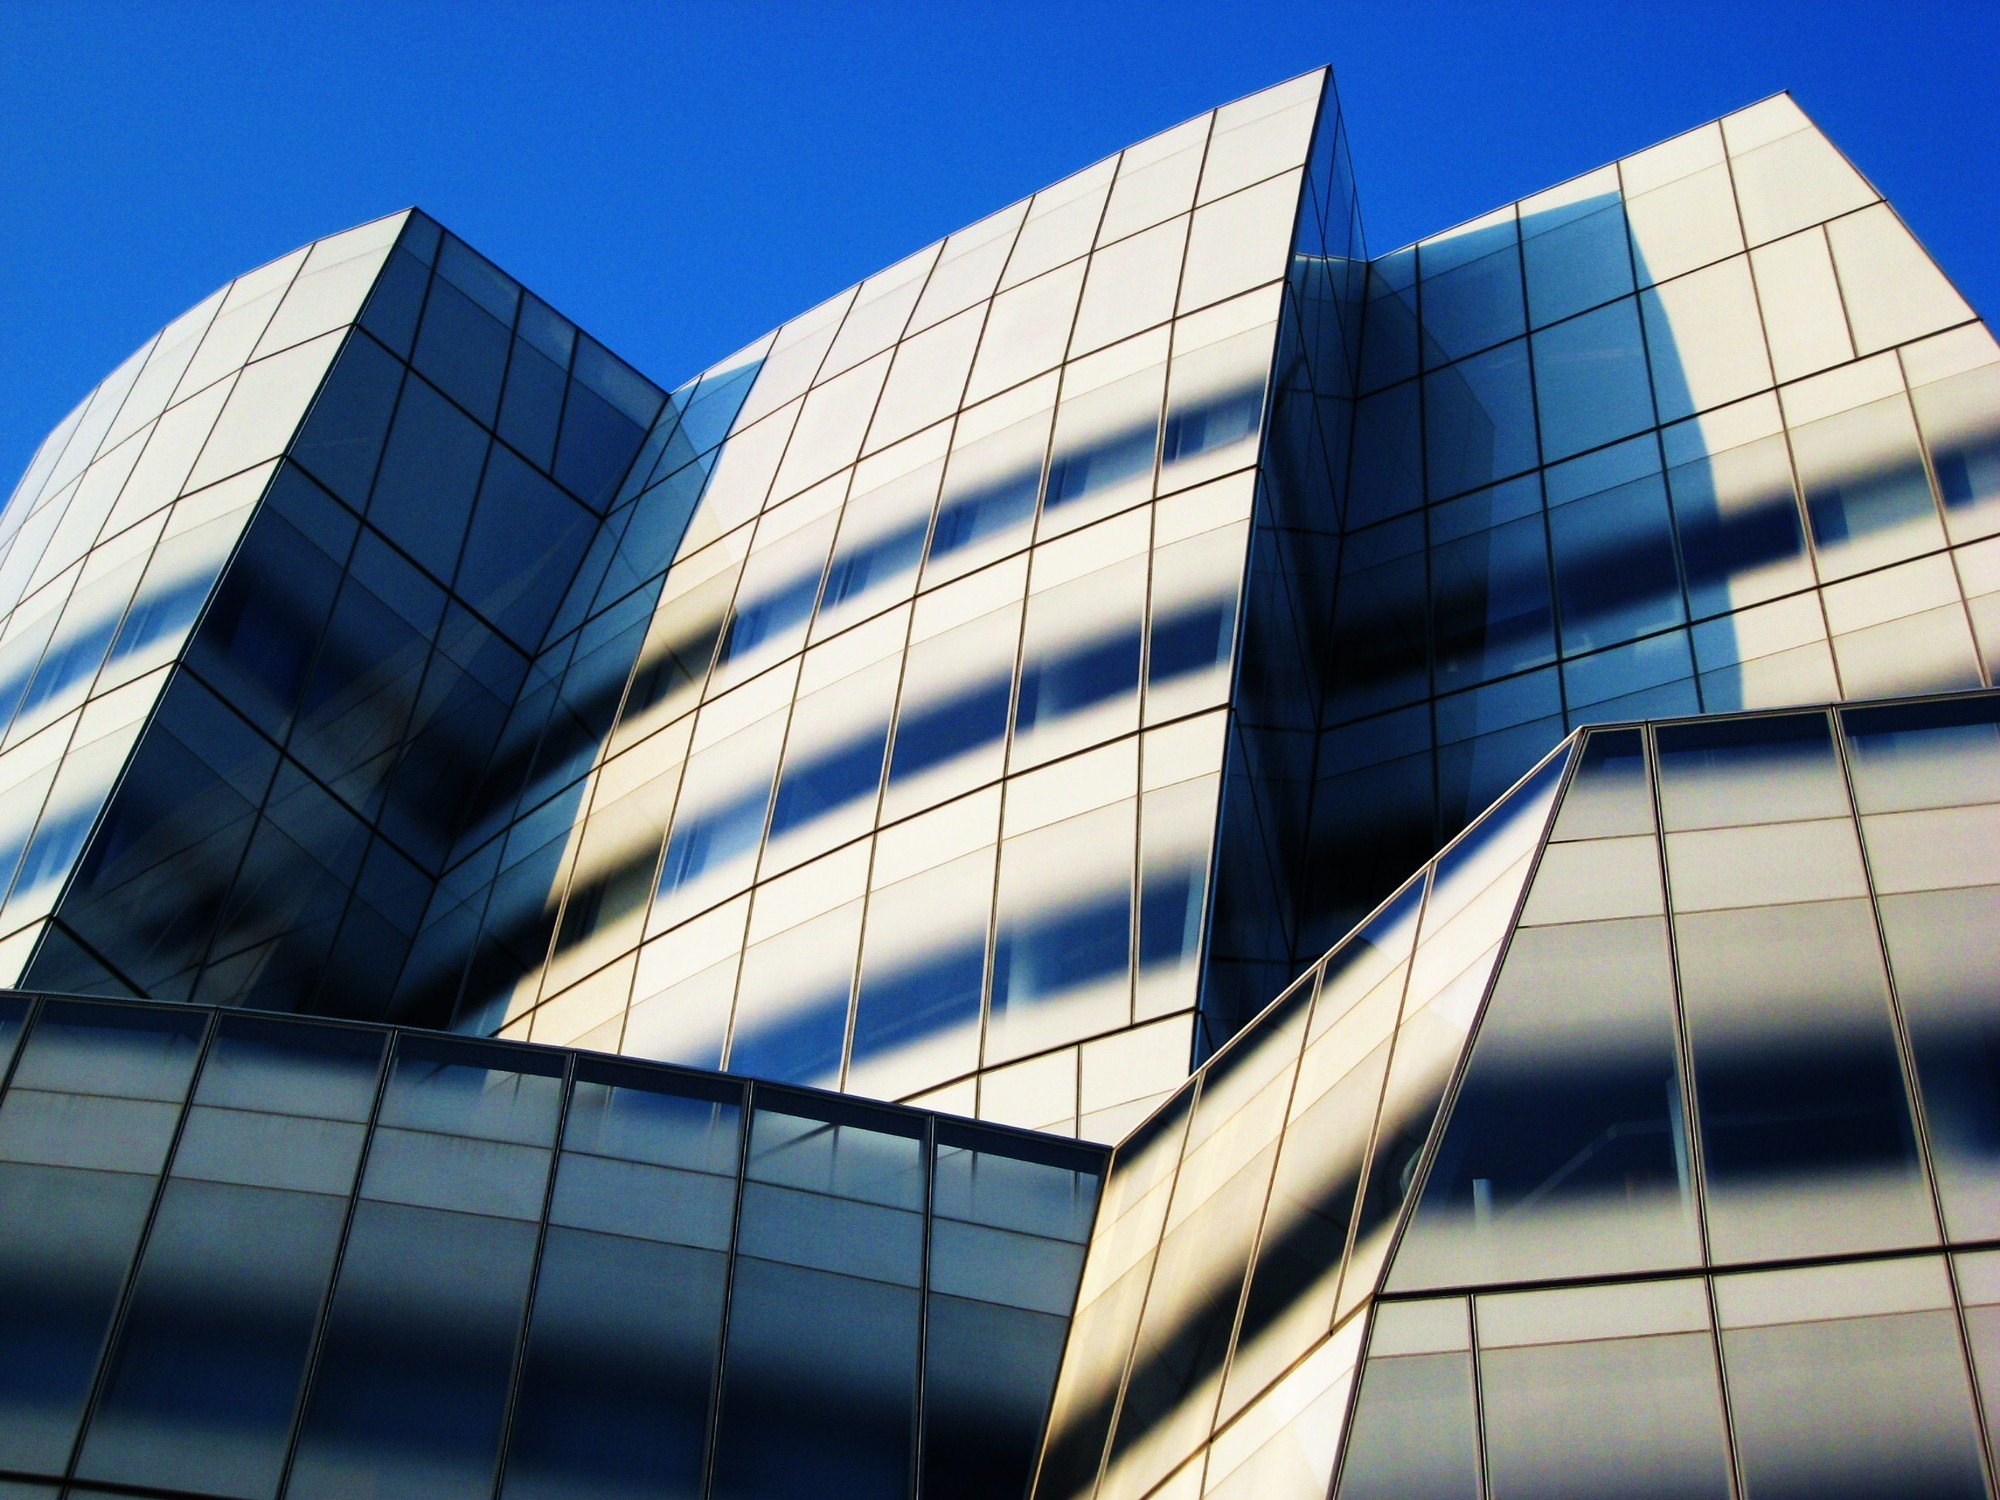 'Geospatial Solutions' Company Trimble Acquires Gehry Technologies, The IAC Building by Gehry Partners. Image © flickr user swisscan